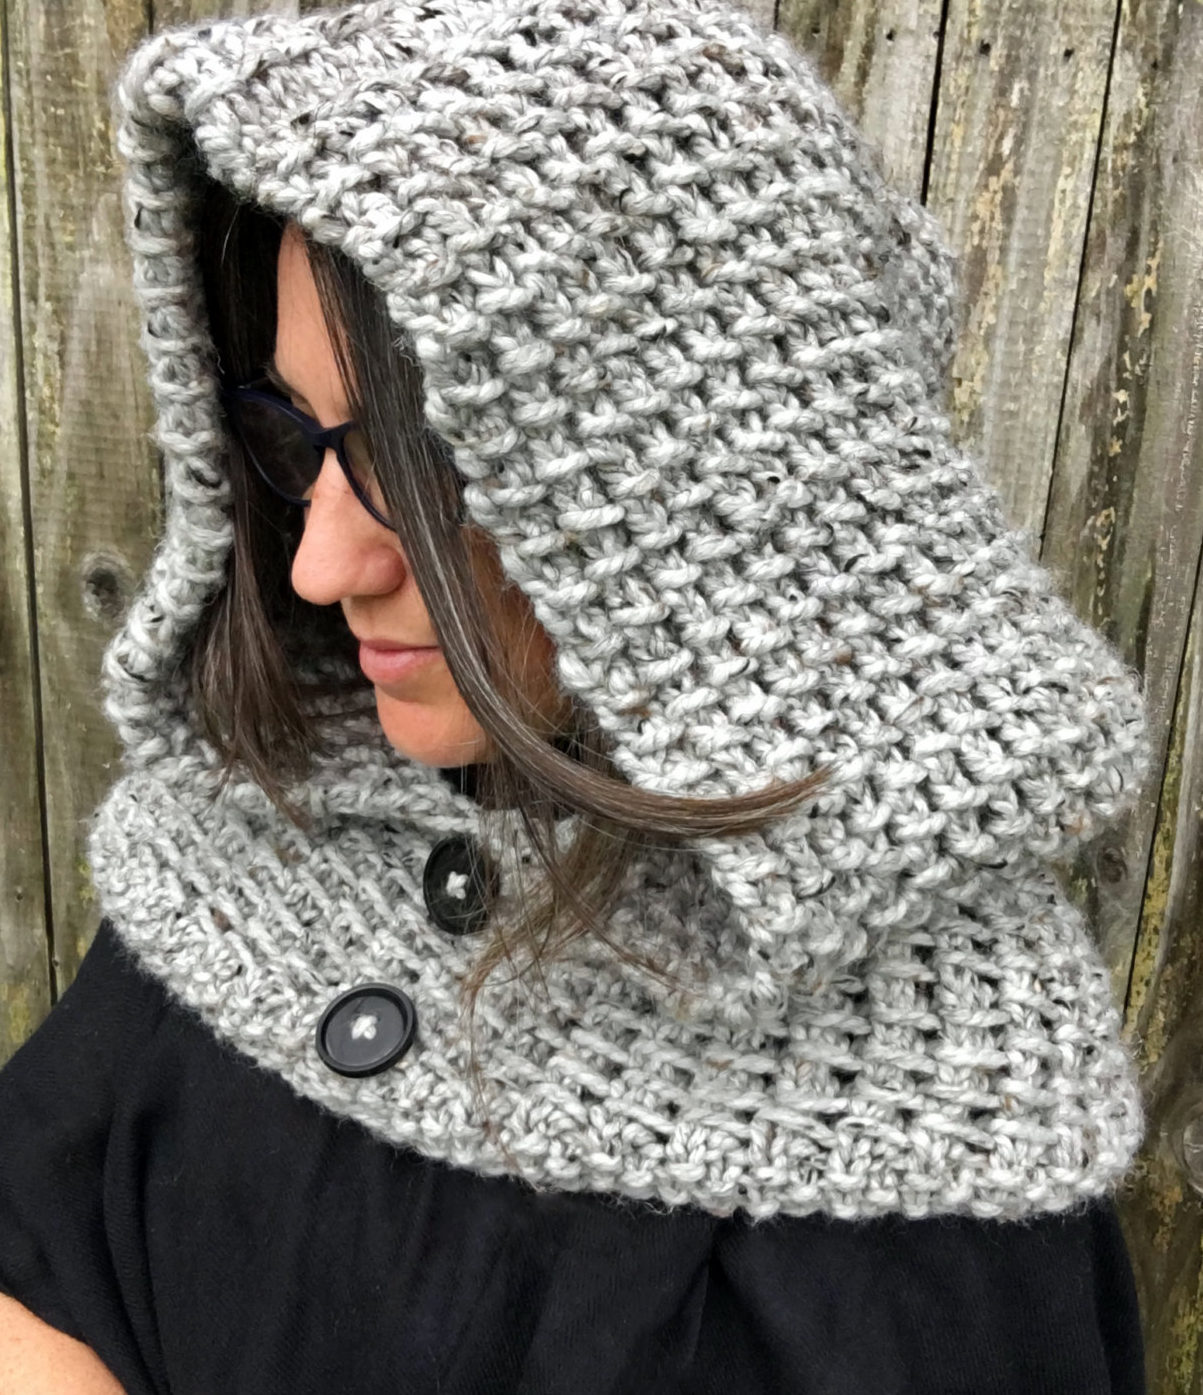 Knitting Pattern For Hooded Cowl : Two-Row Repeat Knitting Patterns In the Loop Knitting